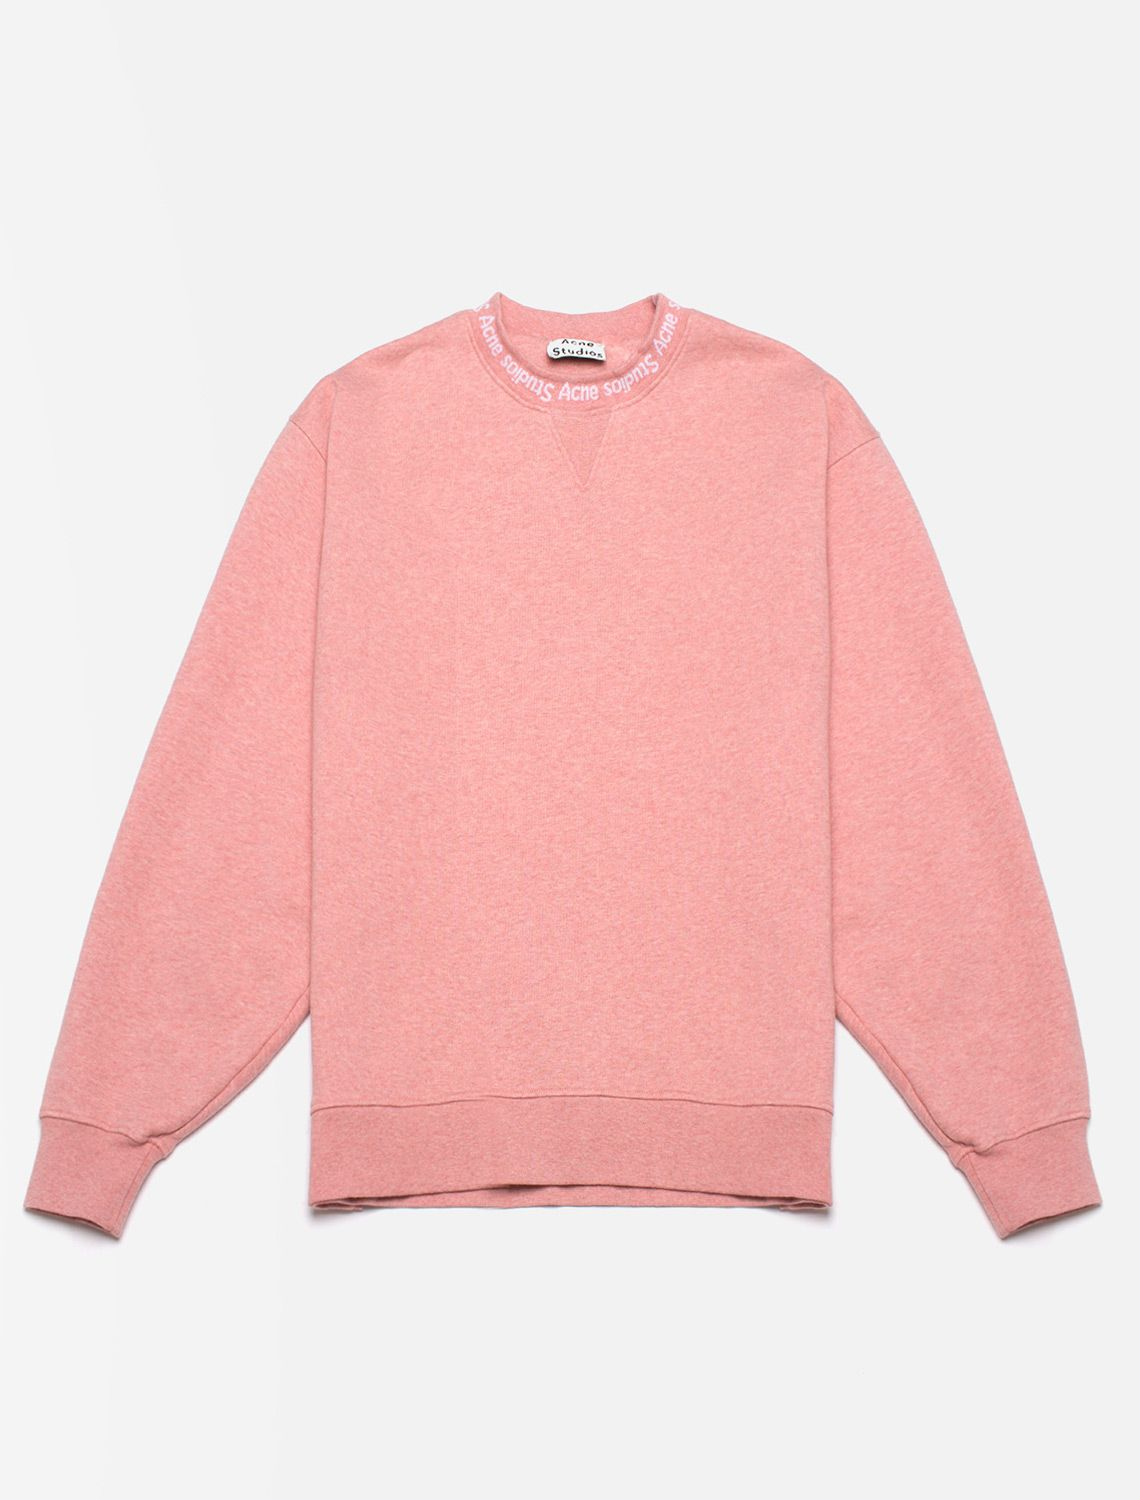 110-1ha174-440-acne-studios-yana-as-rib-sweater-pink-melange-1